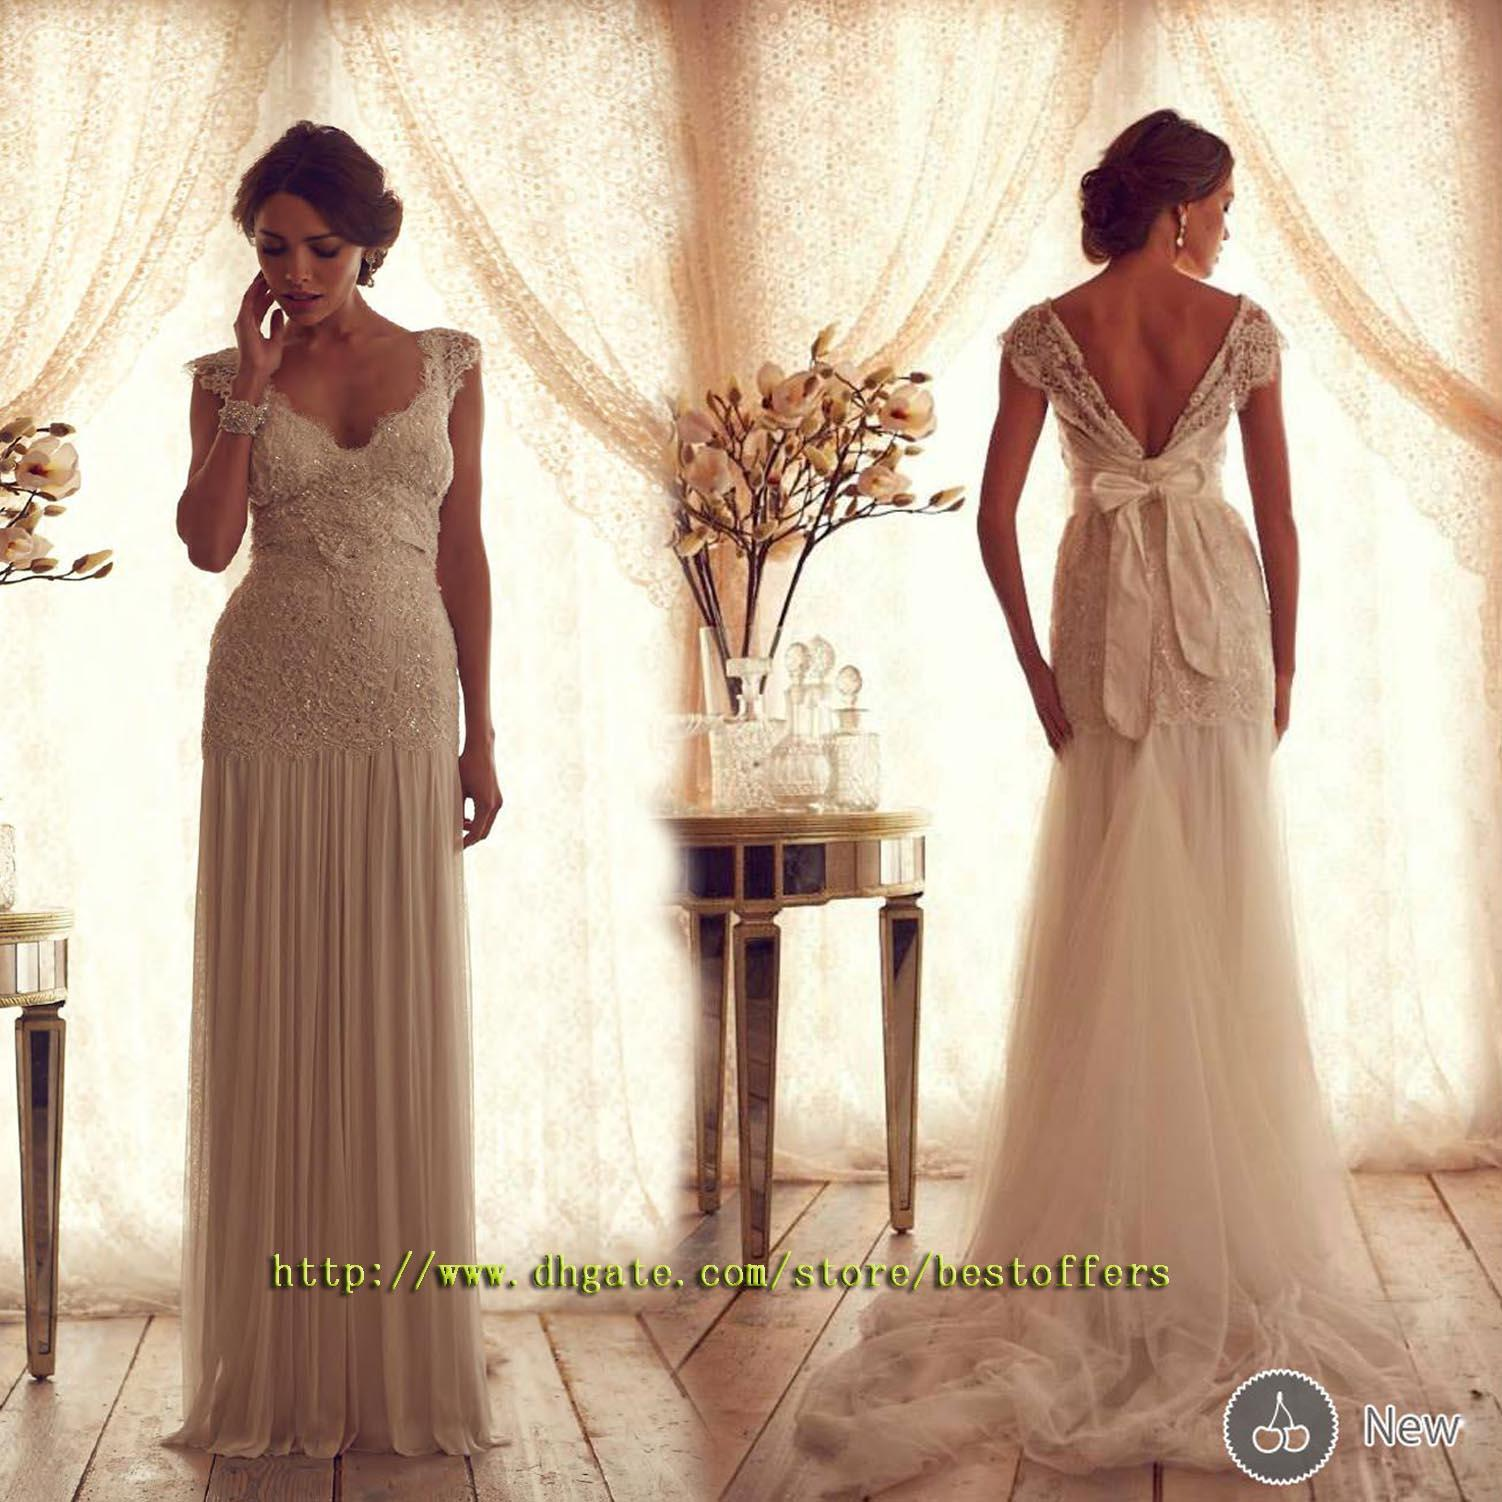 Drop Sleeve Wedding Gowns With: Cap Sleeves Wedding Dress With Drop Waist Lace Fitted On